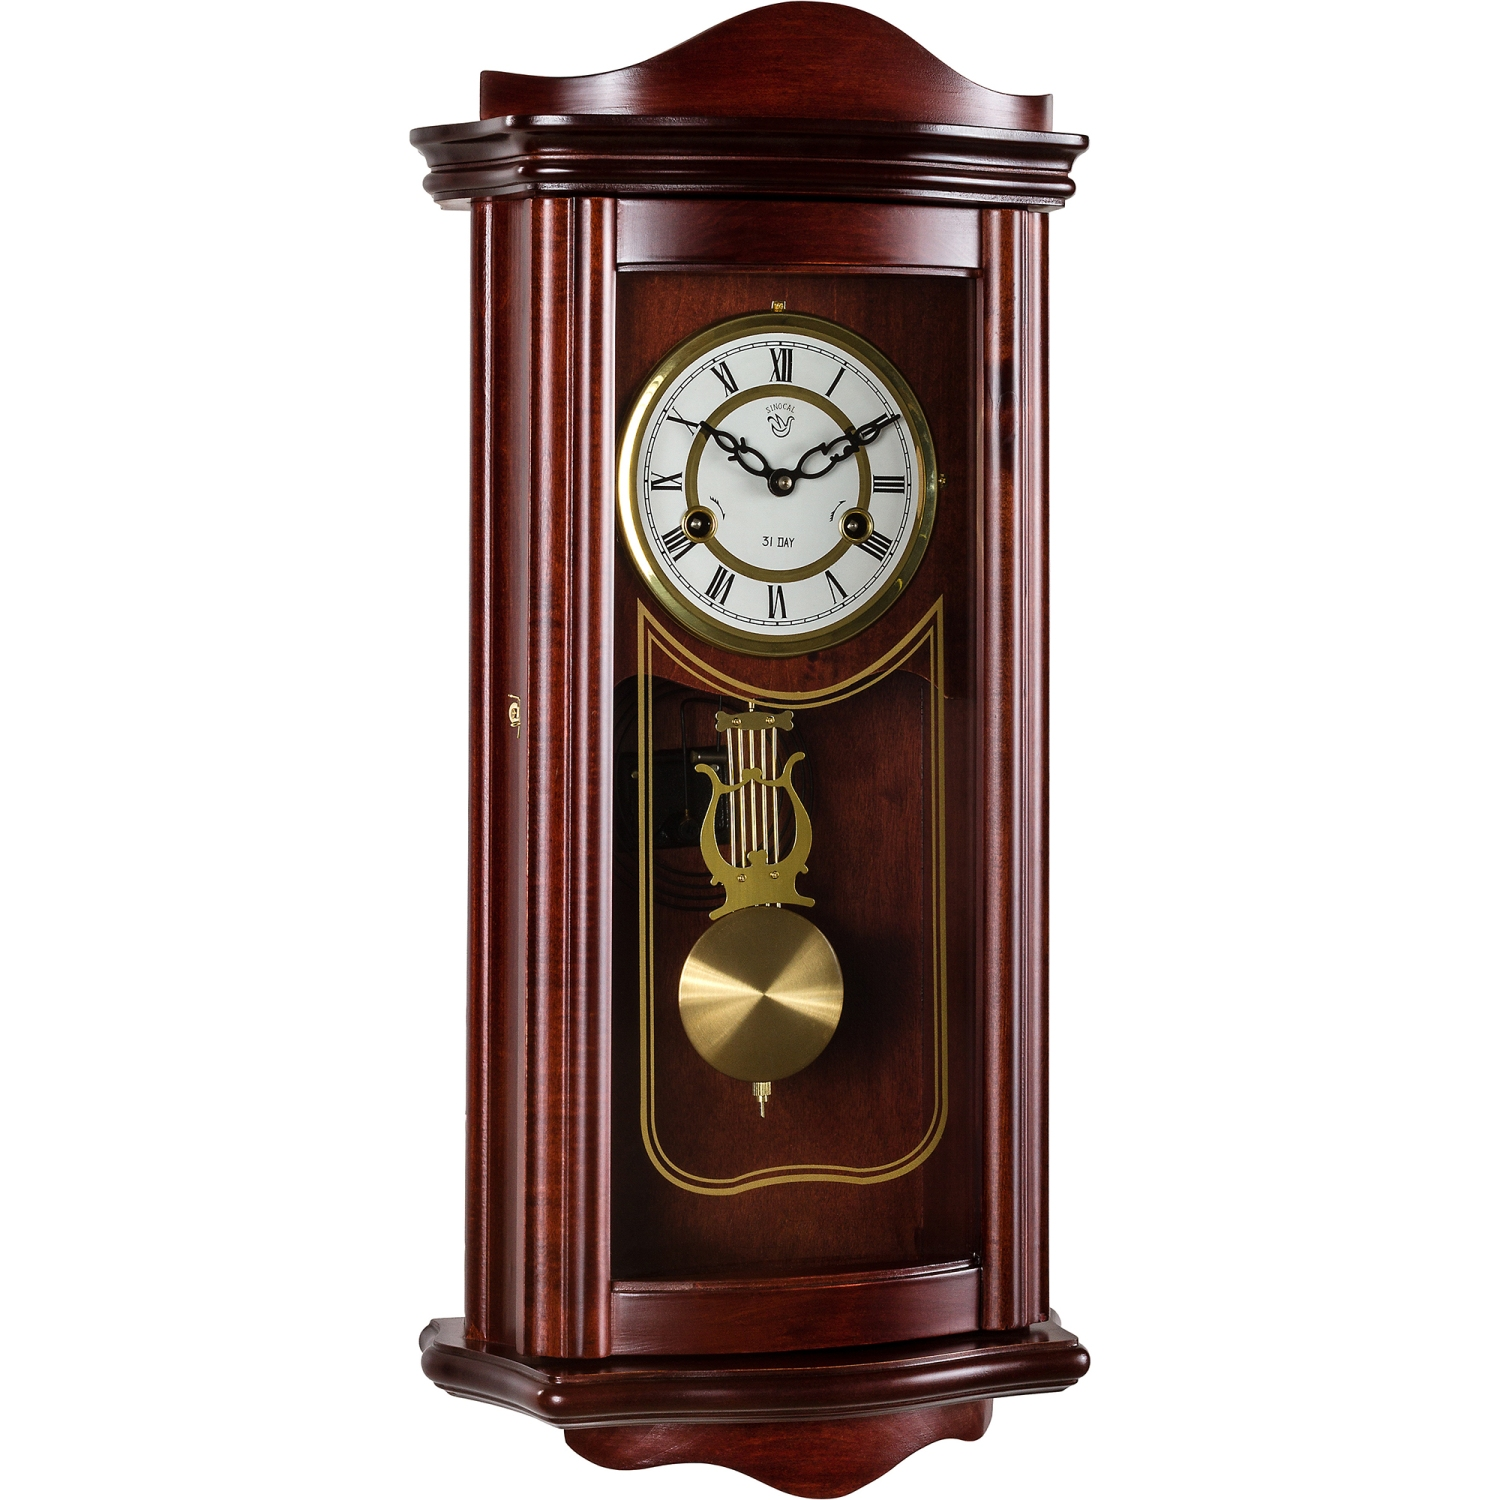 wanduhr pendeluhr regulator antik mechanisch mahagoni holz uhr prometheus ebay. Black Bedroom Furniture Sets. Home Design Ideas